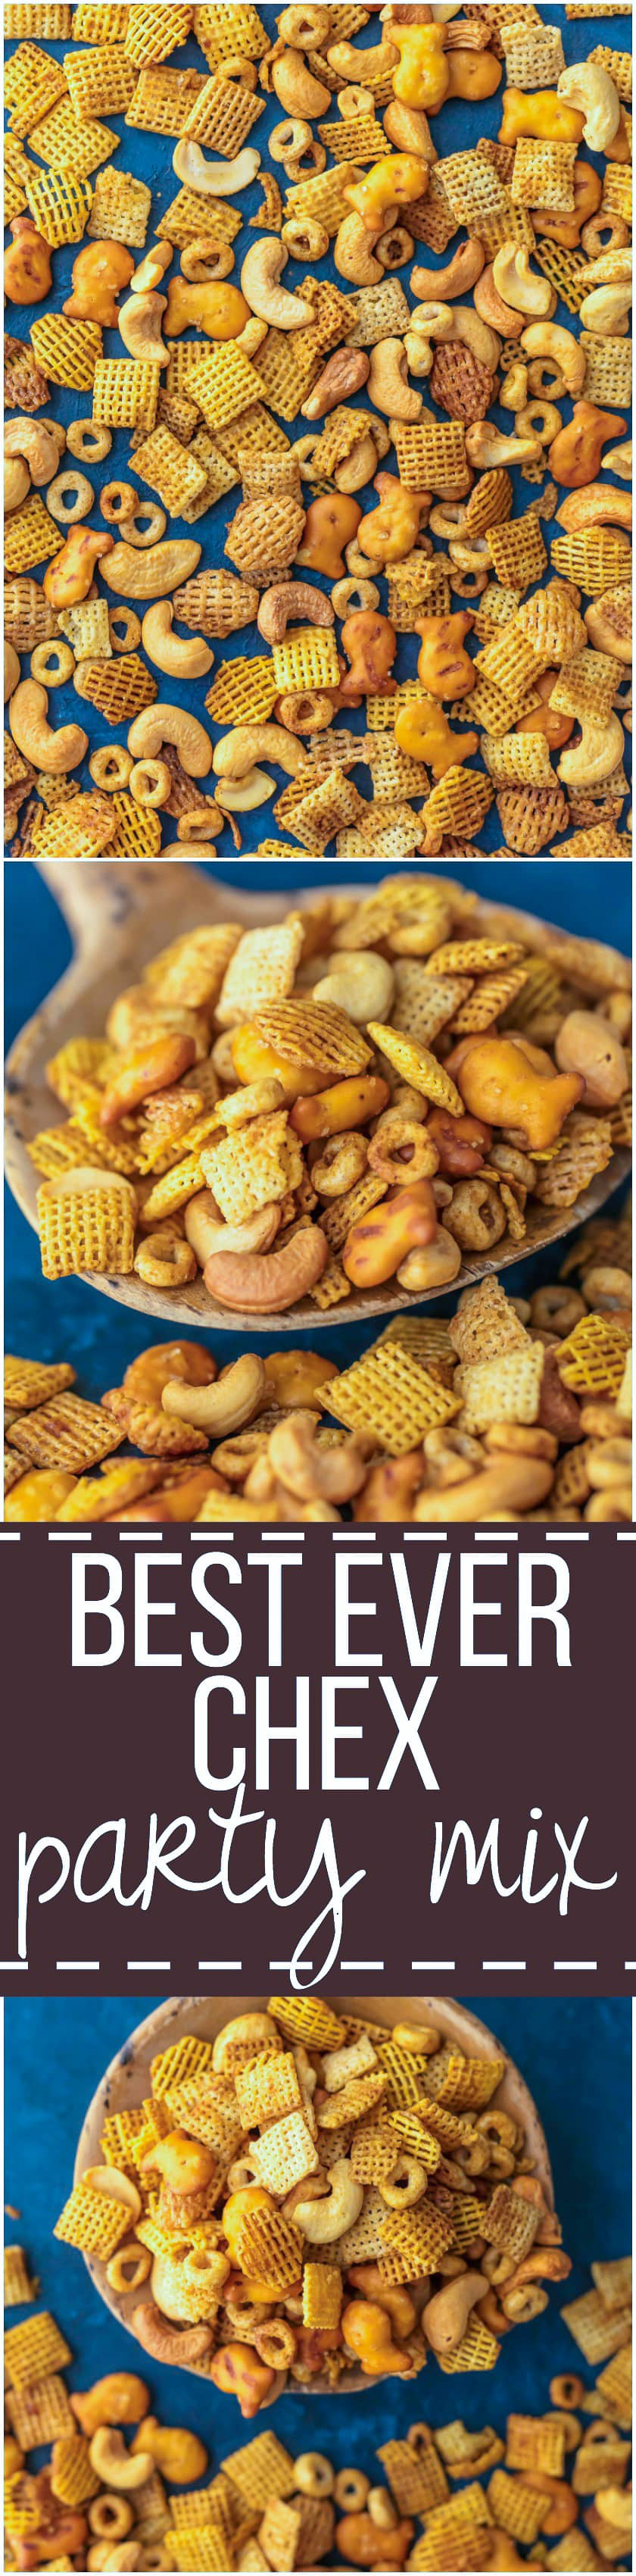 BEST EVER CHEX PARTY MIX is the ultimate holiday appetizer! Our family has this PERFECT cereal party mix in bulk every Christmas. SO ADDICTING!